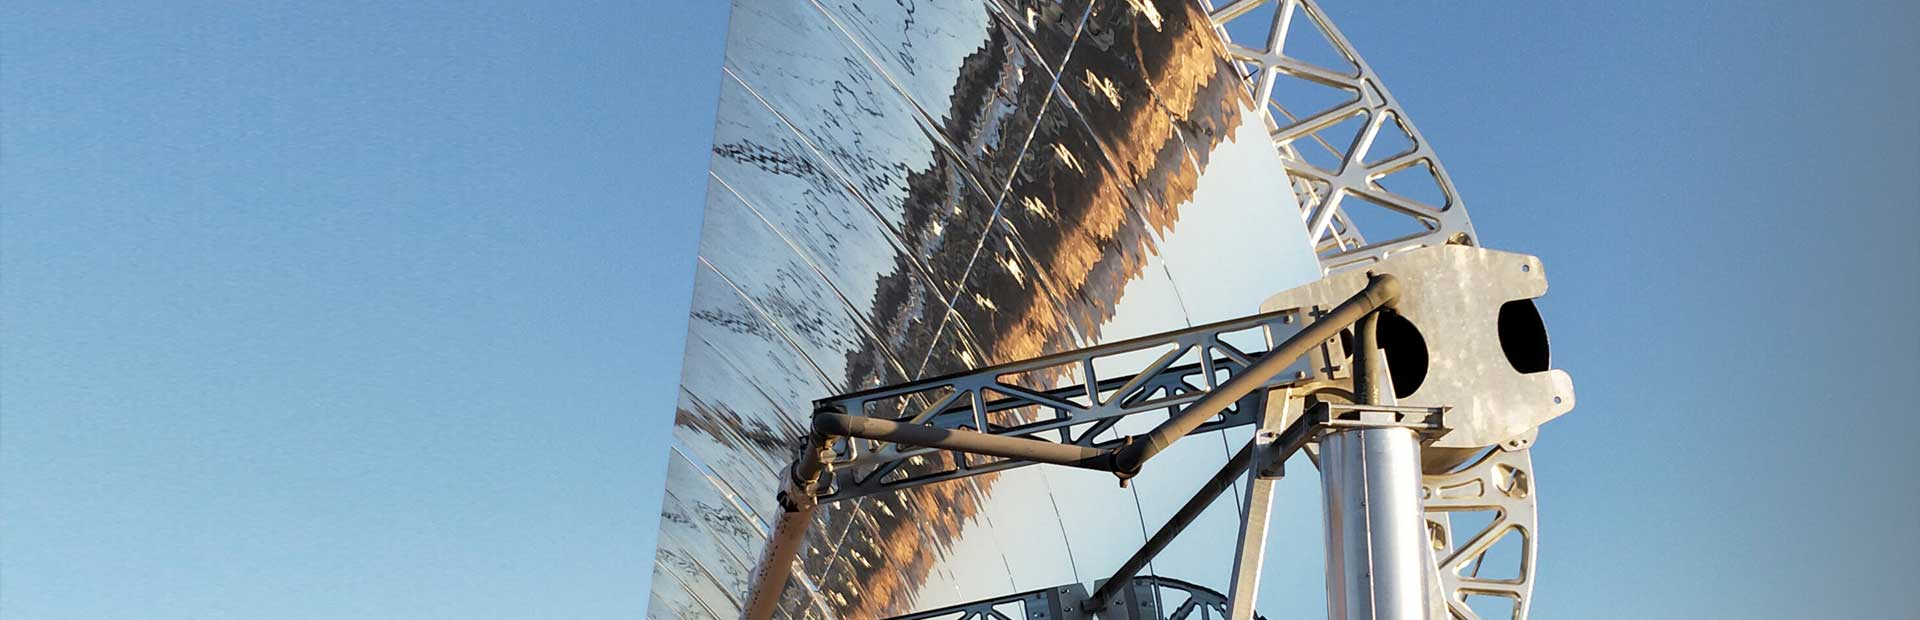 Leaders in Concentrated Solar Power